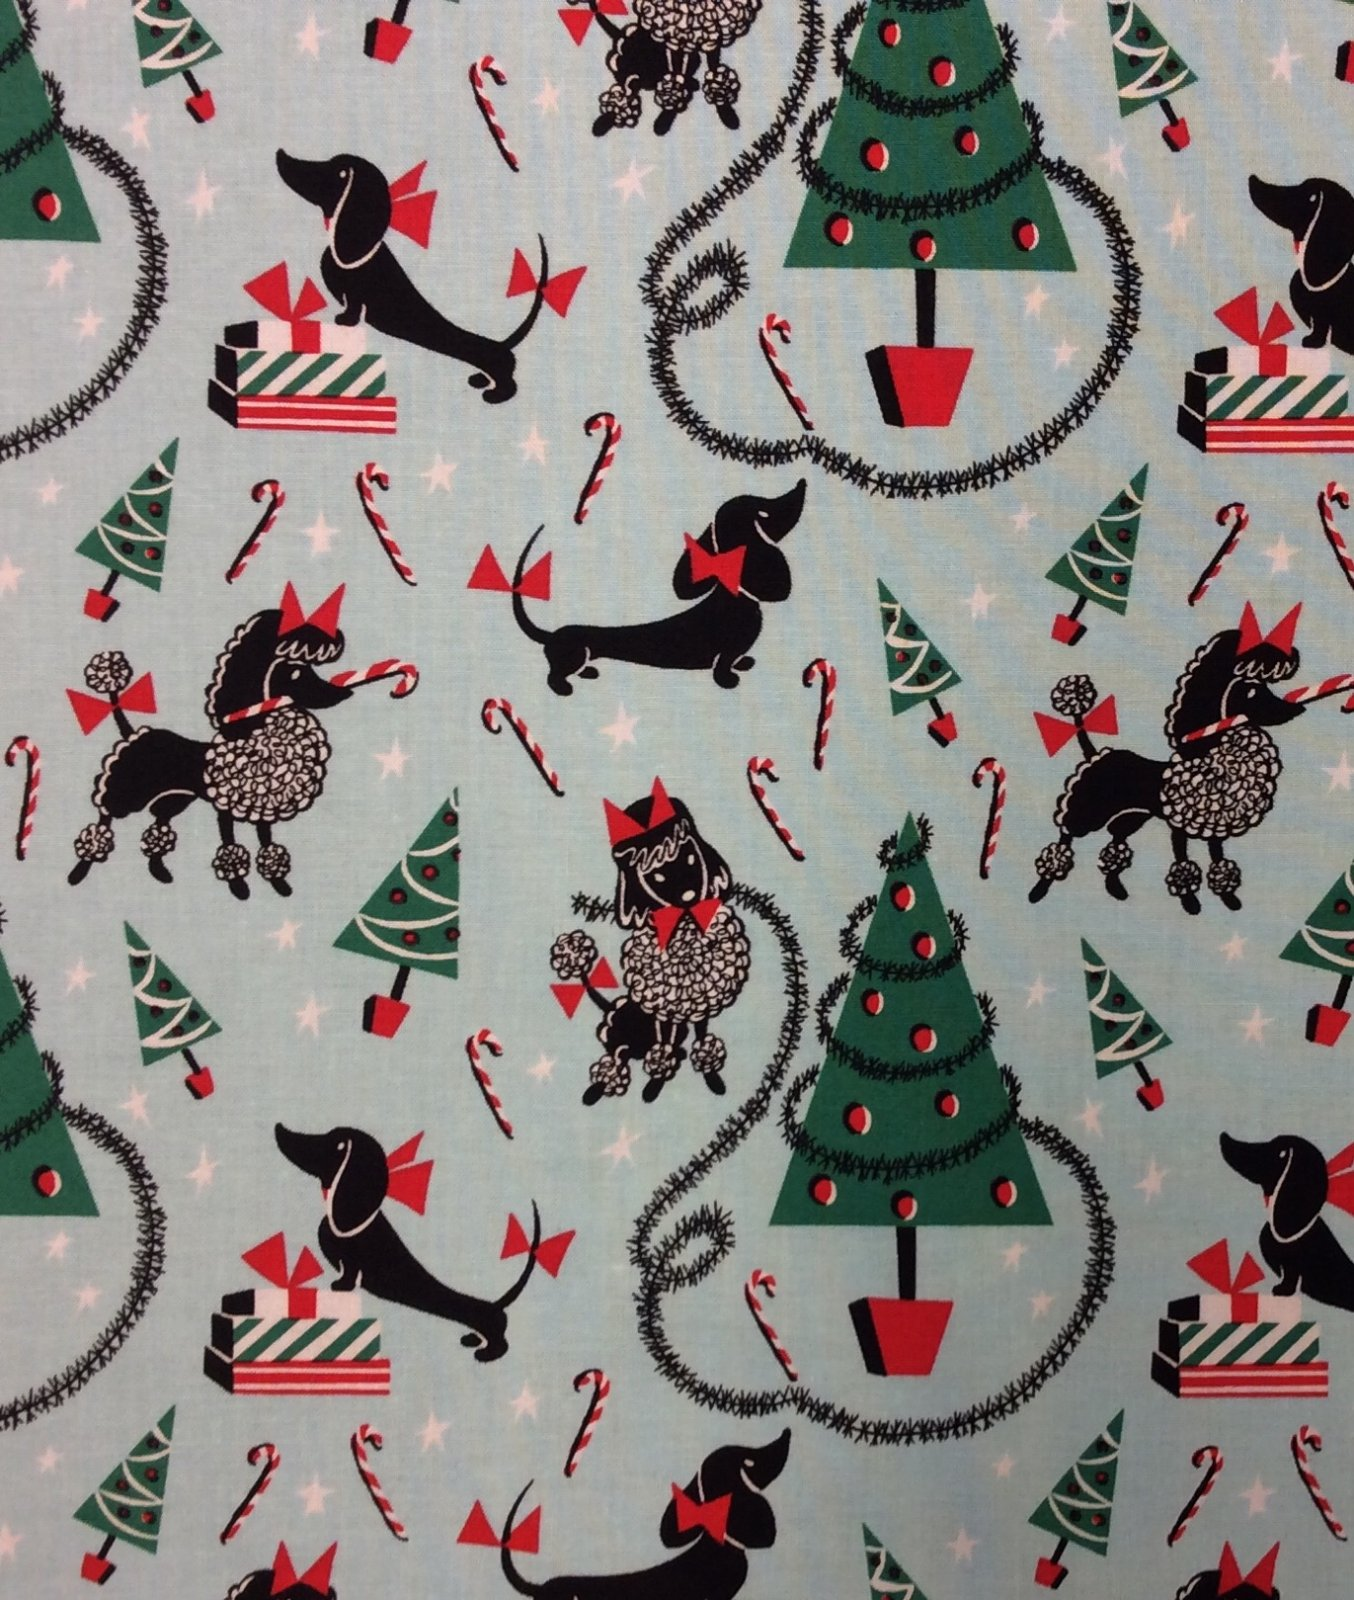 Canine Christmas Retro Puppy Dogs Christmas Trees Poodles Dachshunds Cotton Quilt Fabric MM128